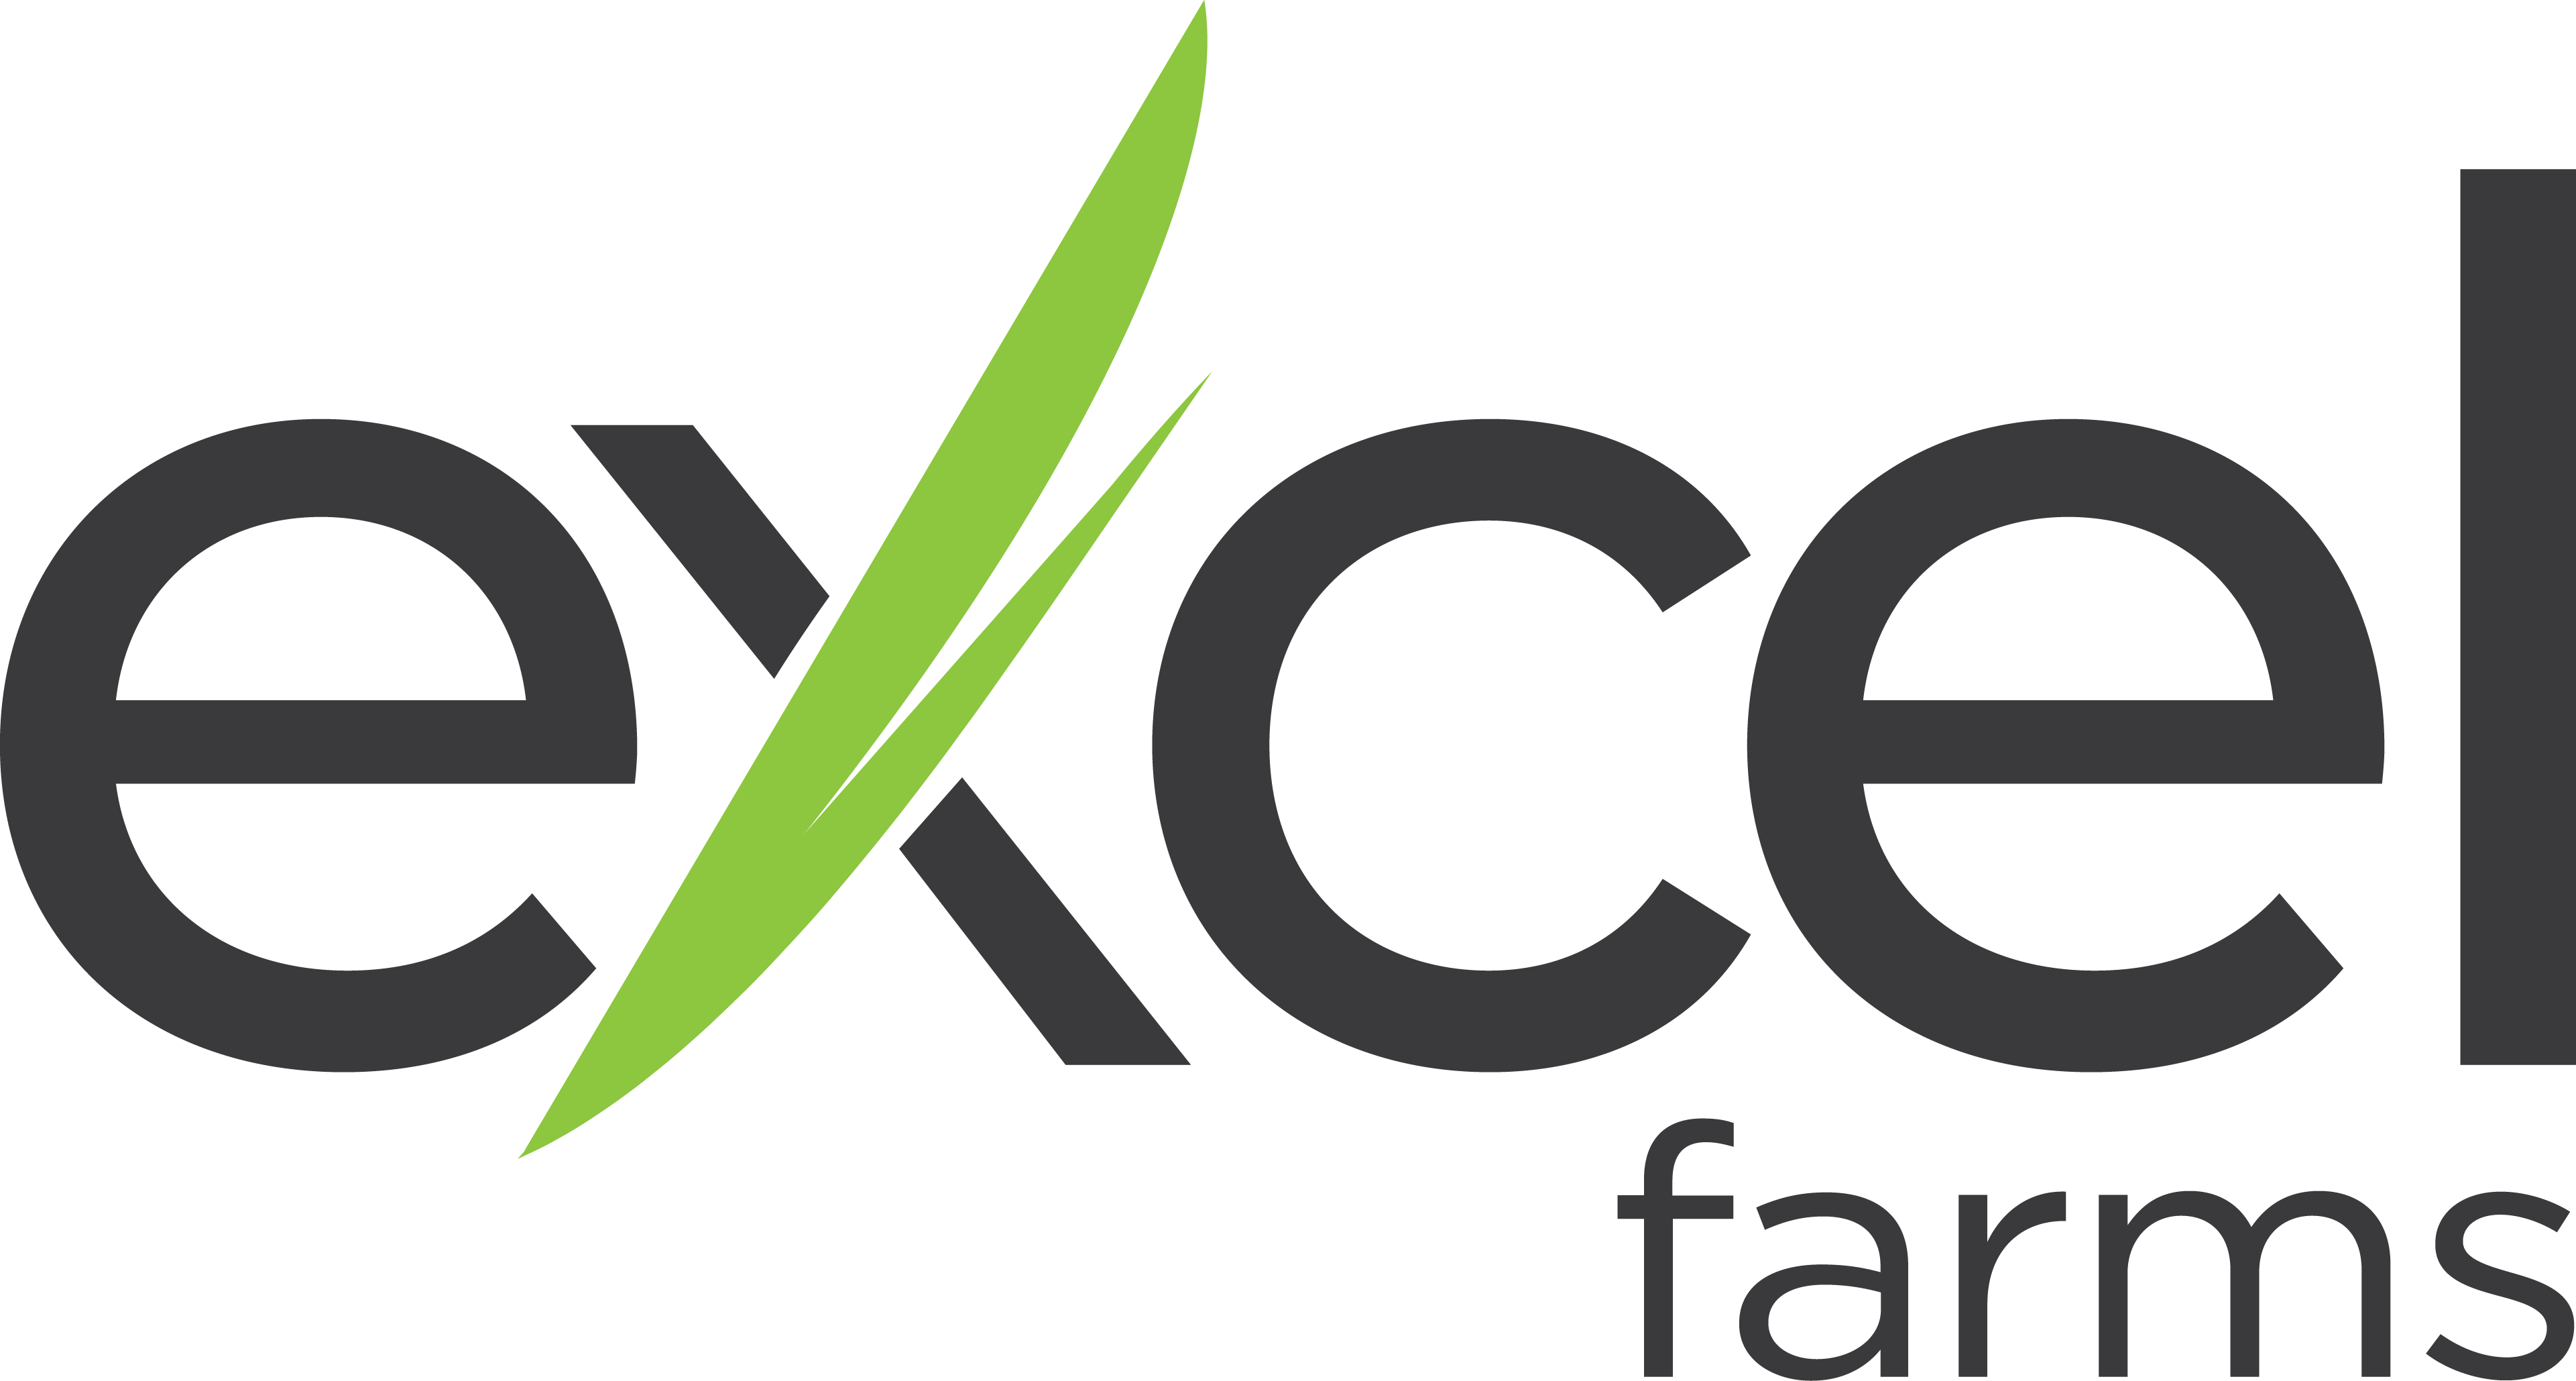 Excel Farms_Primary Logo_Full Color